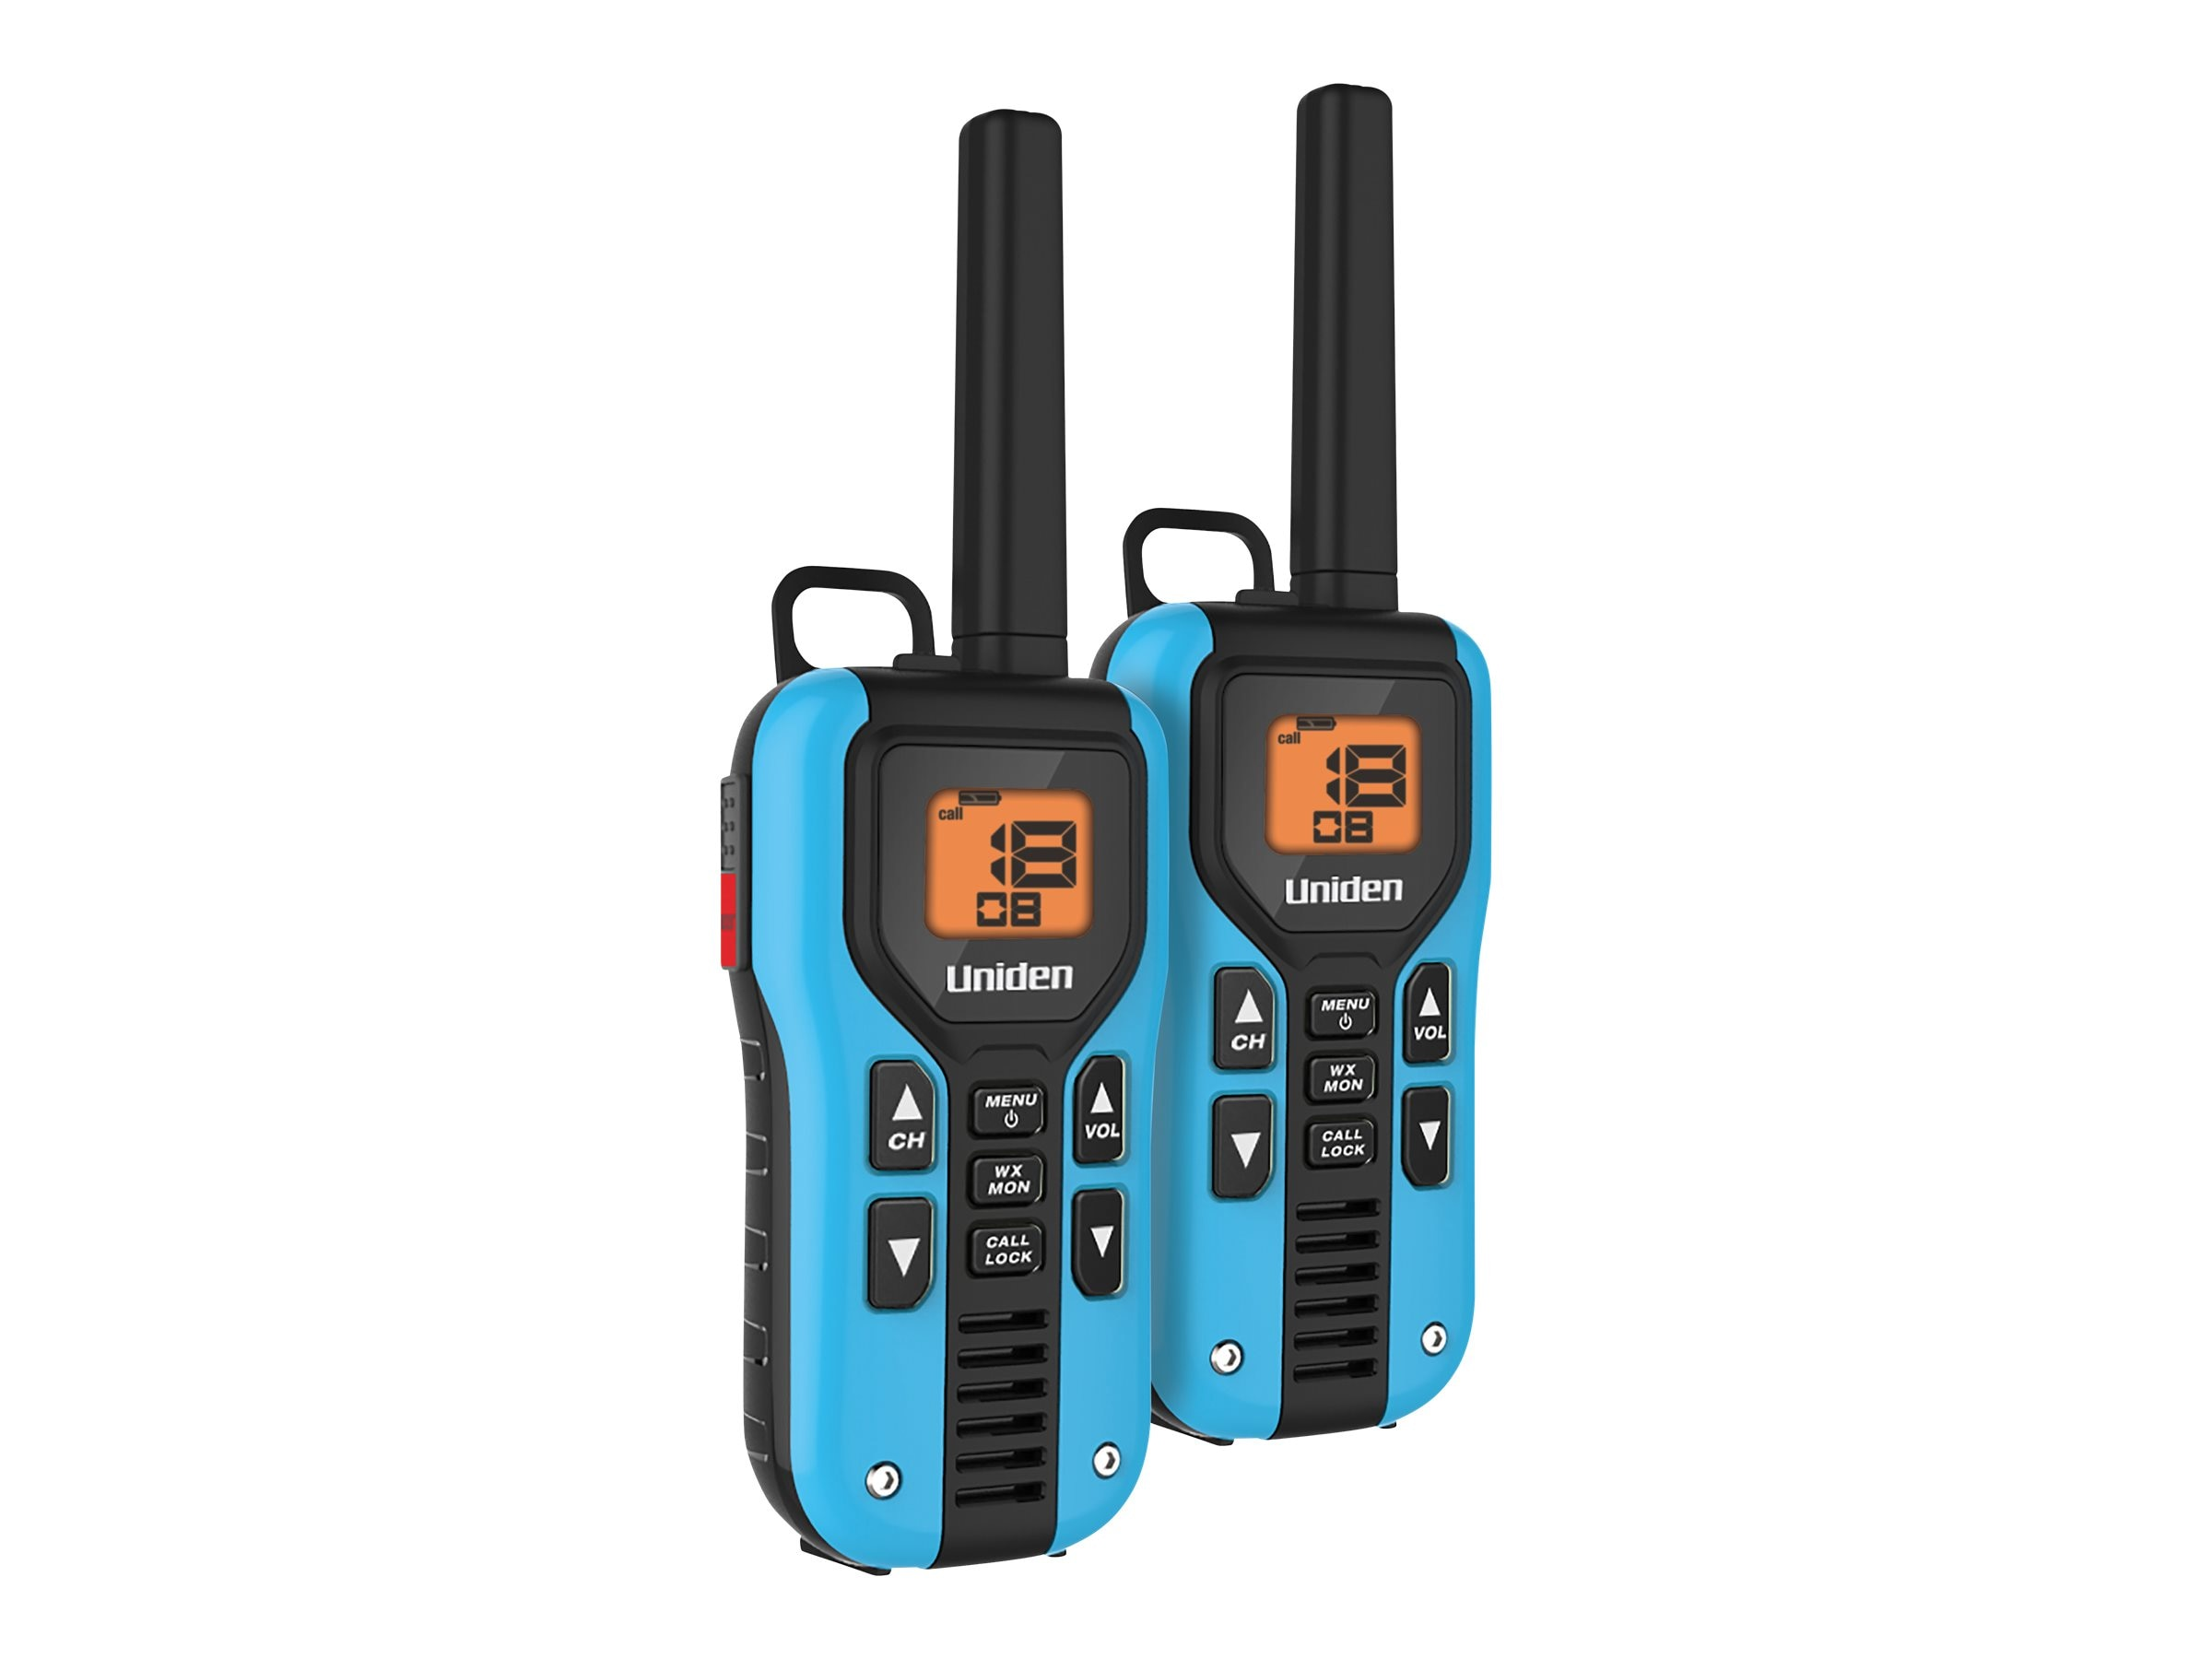 Uniden GMRS FRS 40-Mile Radio w  Privacy Codes, Weather Alerts & Headsets, GMR4055-2CKHS